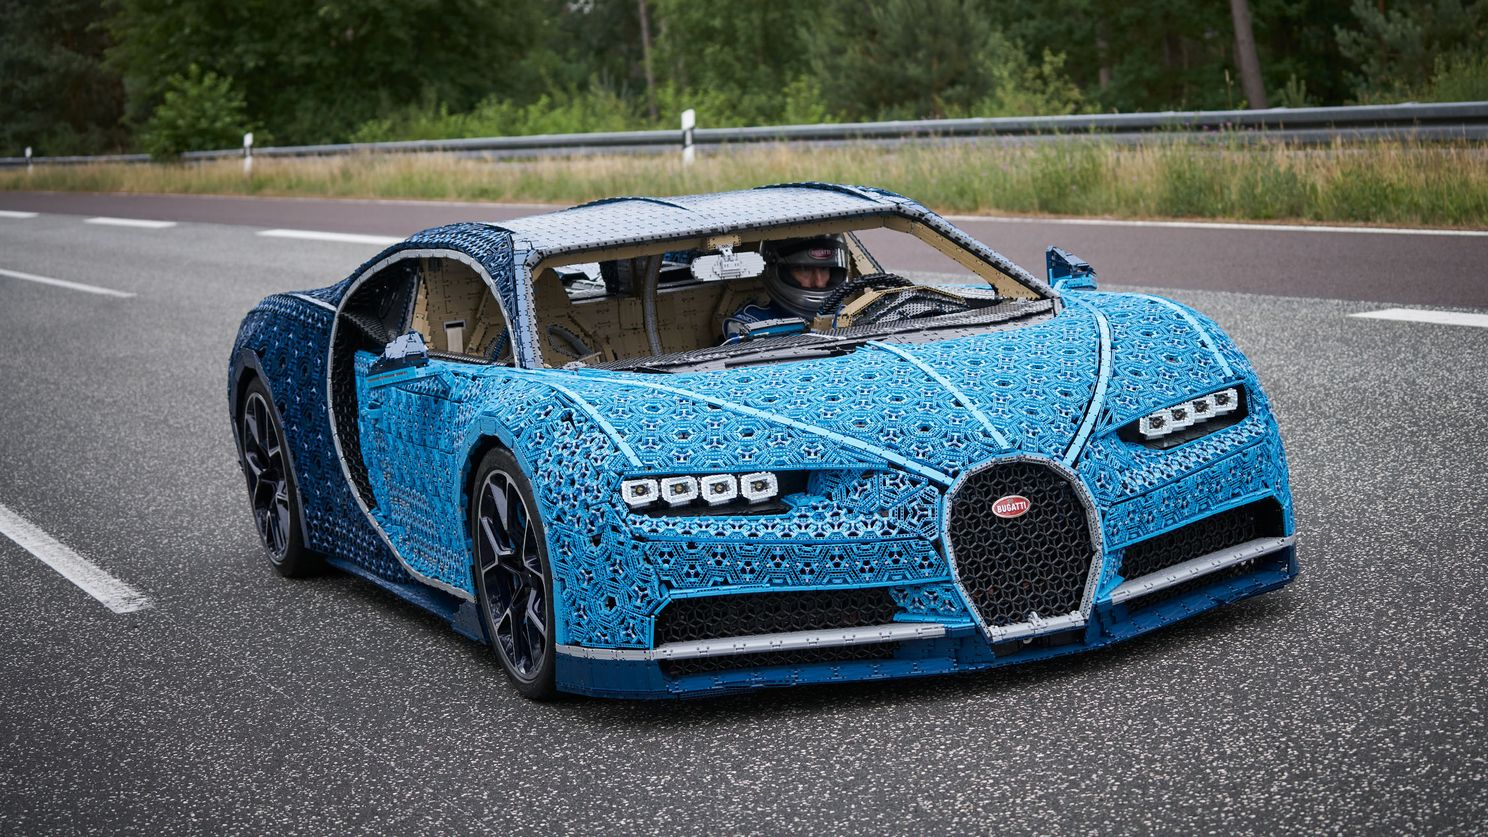 This driveable Bugatti Chiron is made out of 1 million Lego